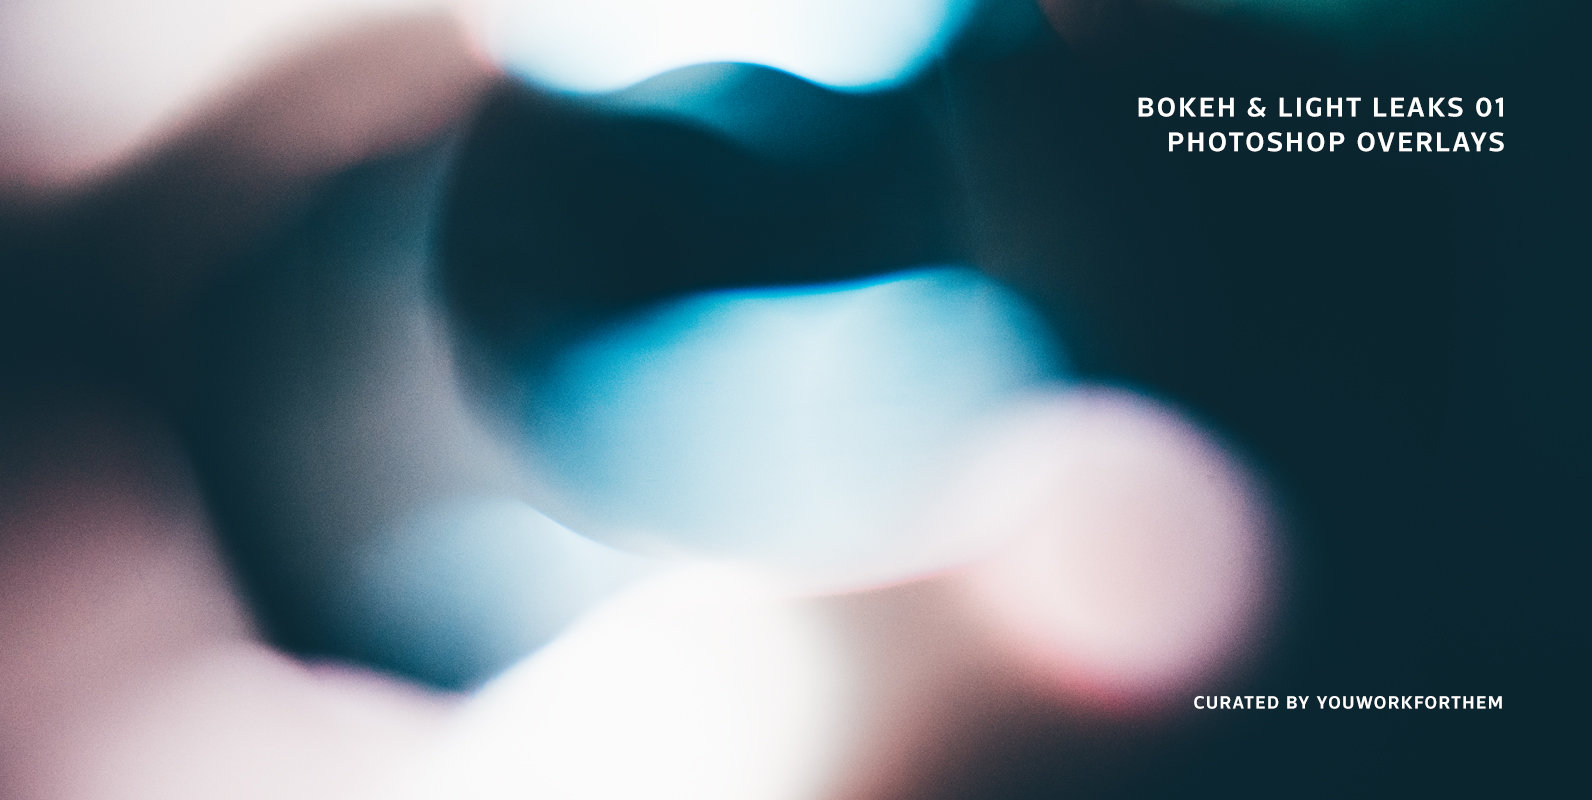 Bokeh & Light Leaks 01 - Photoshop Overlays